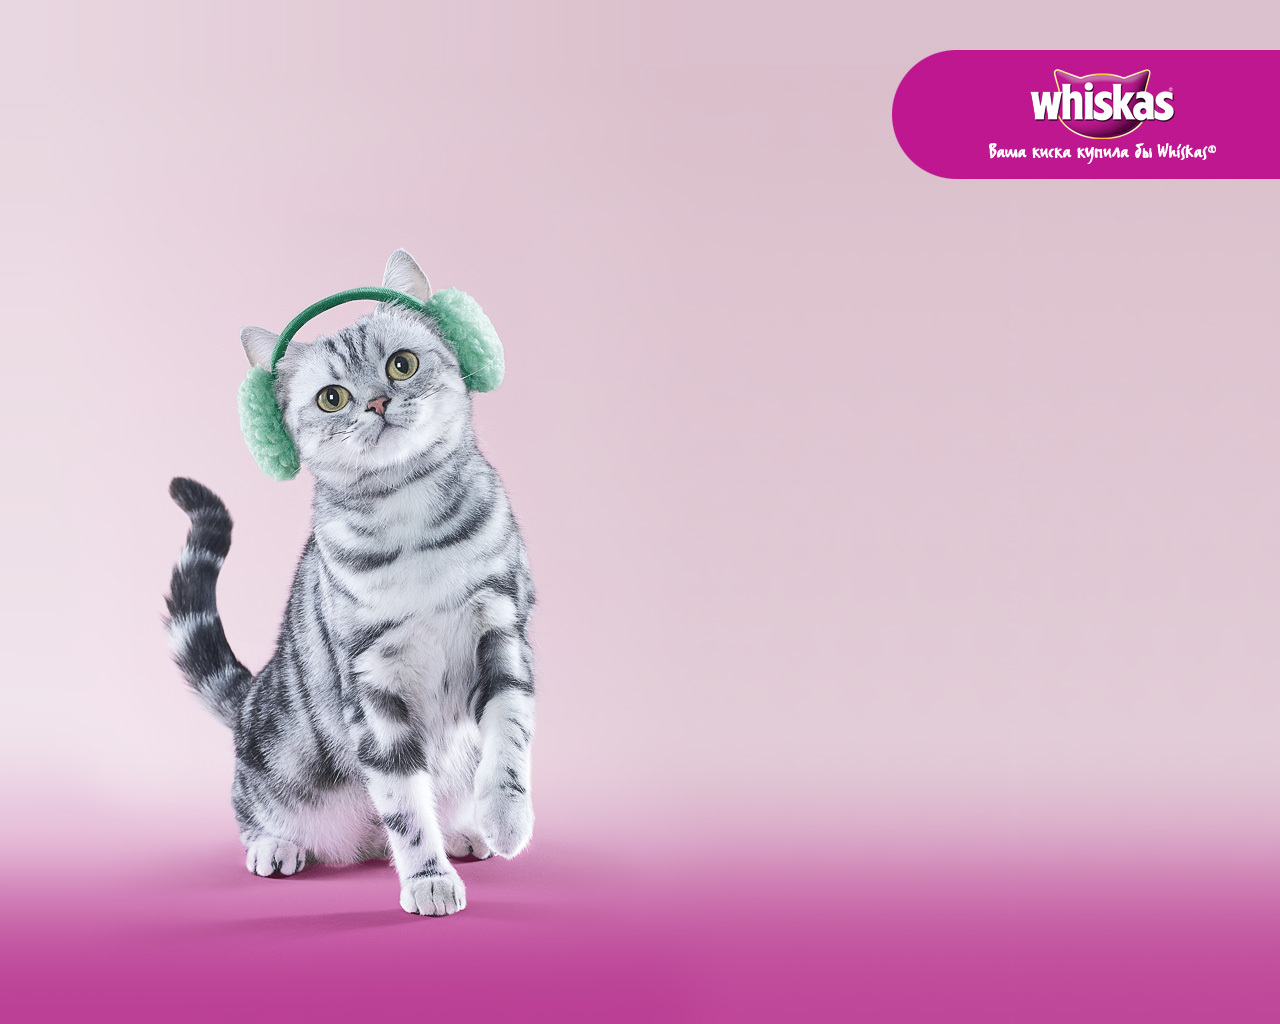 14605 download wallpaper Animals, Cats, Whiskas screensavers and pictures for free